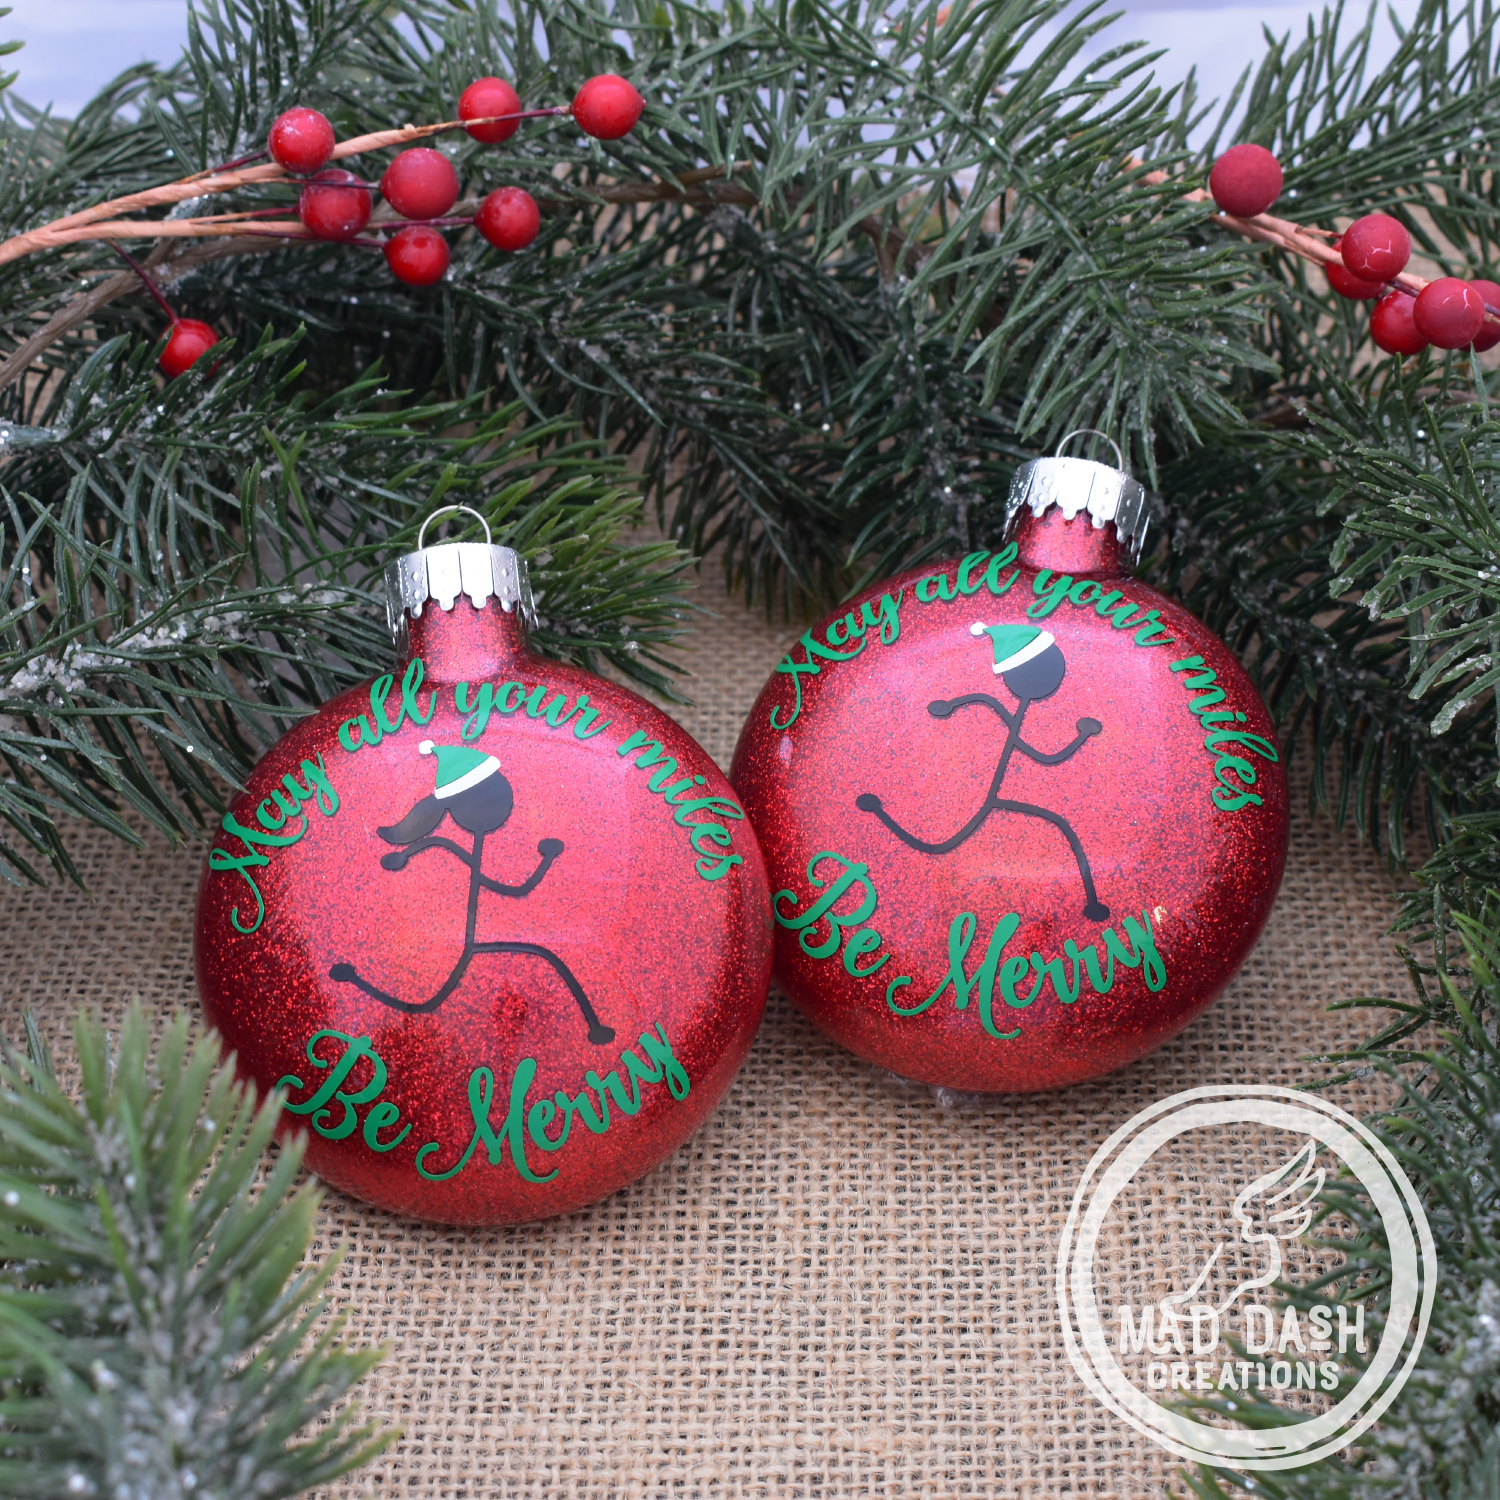 Mad Dash Creations May all your miles Be Merry Ornament